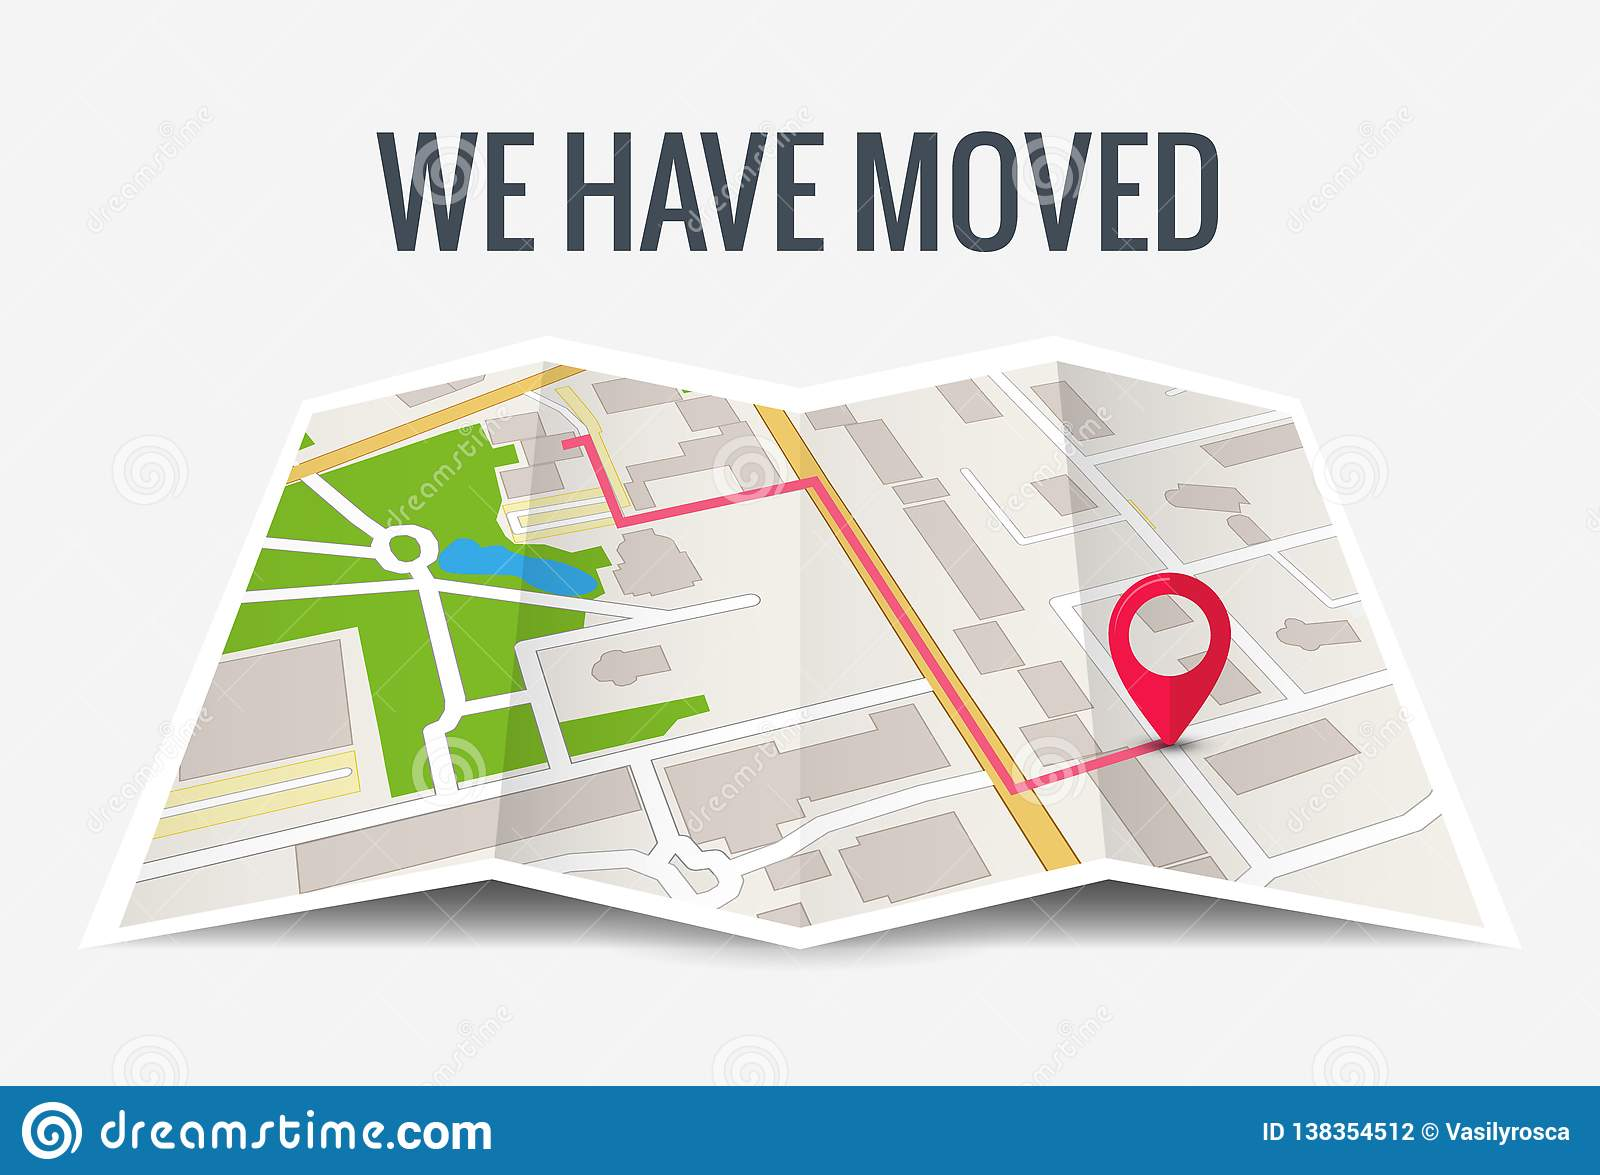 We have moved new office icon location. Address move change location announcement business home map